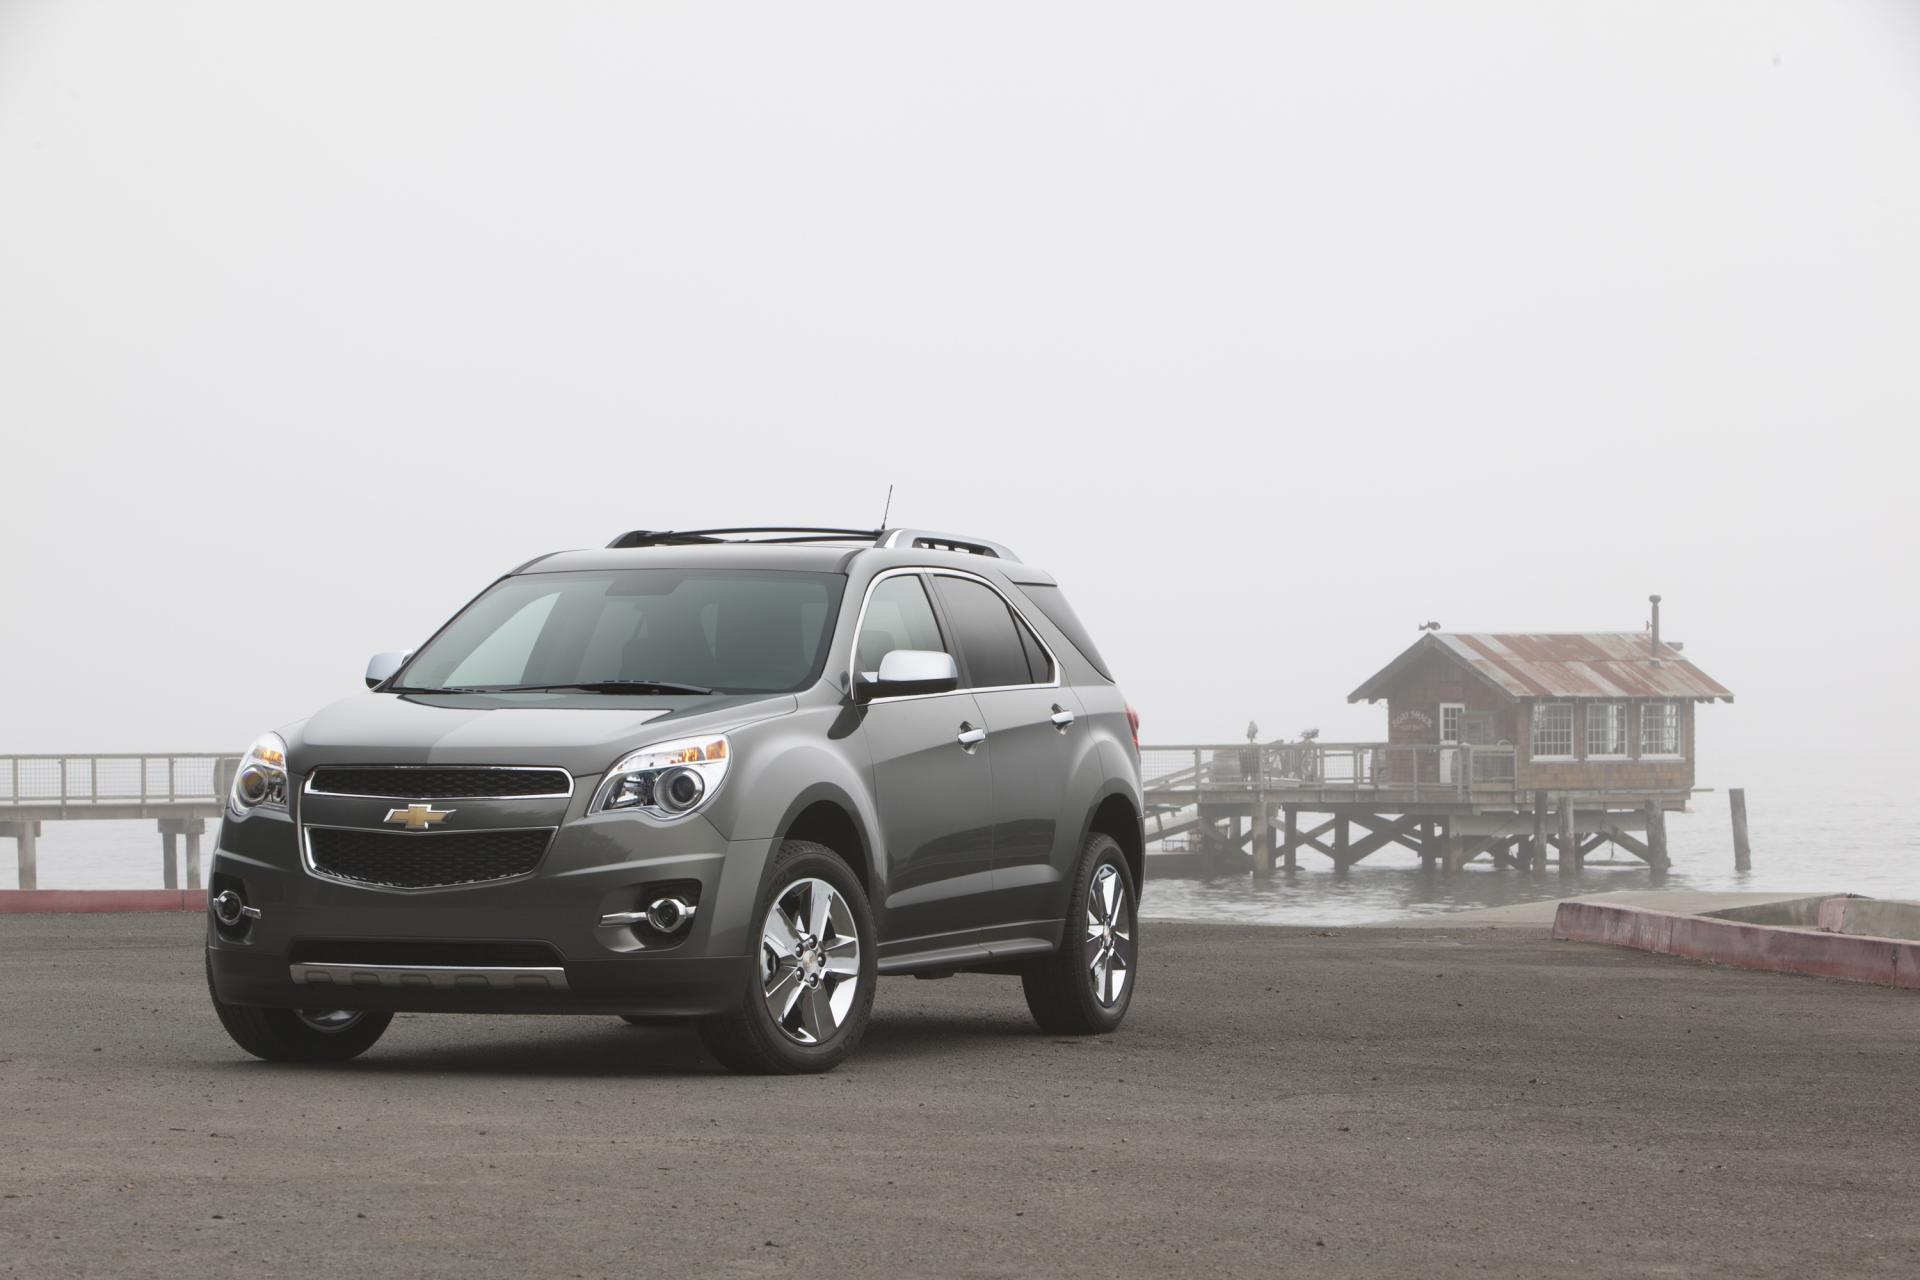 2014 Chevrolet Equinox News and Information